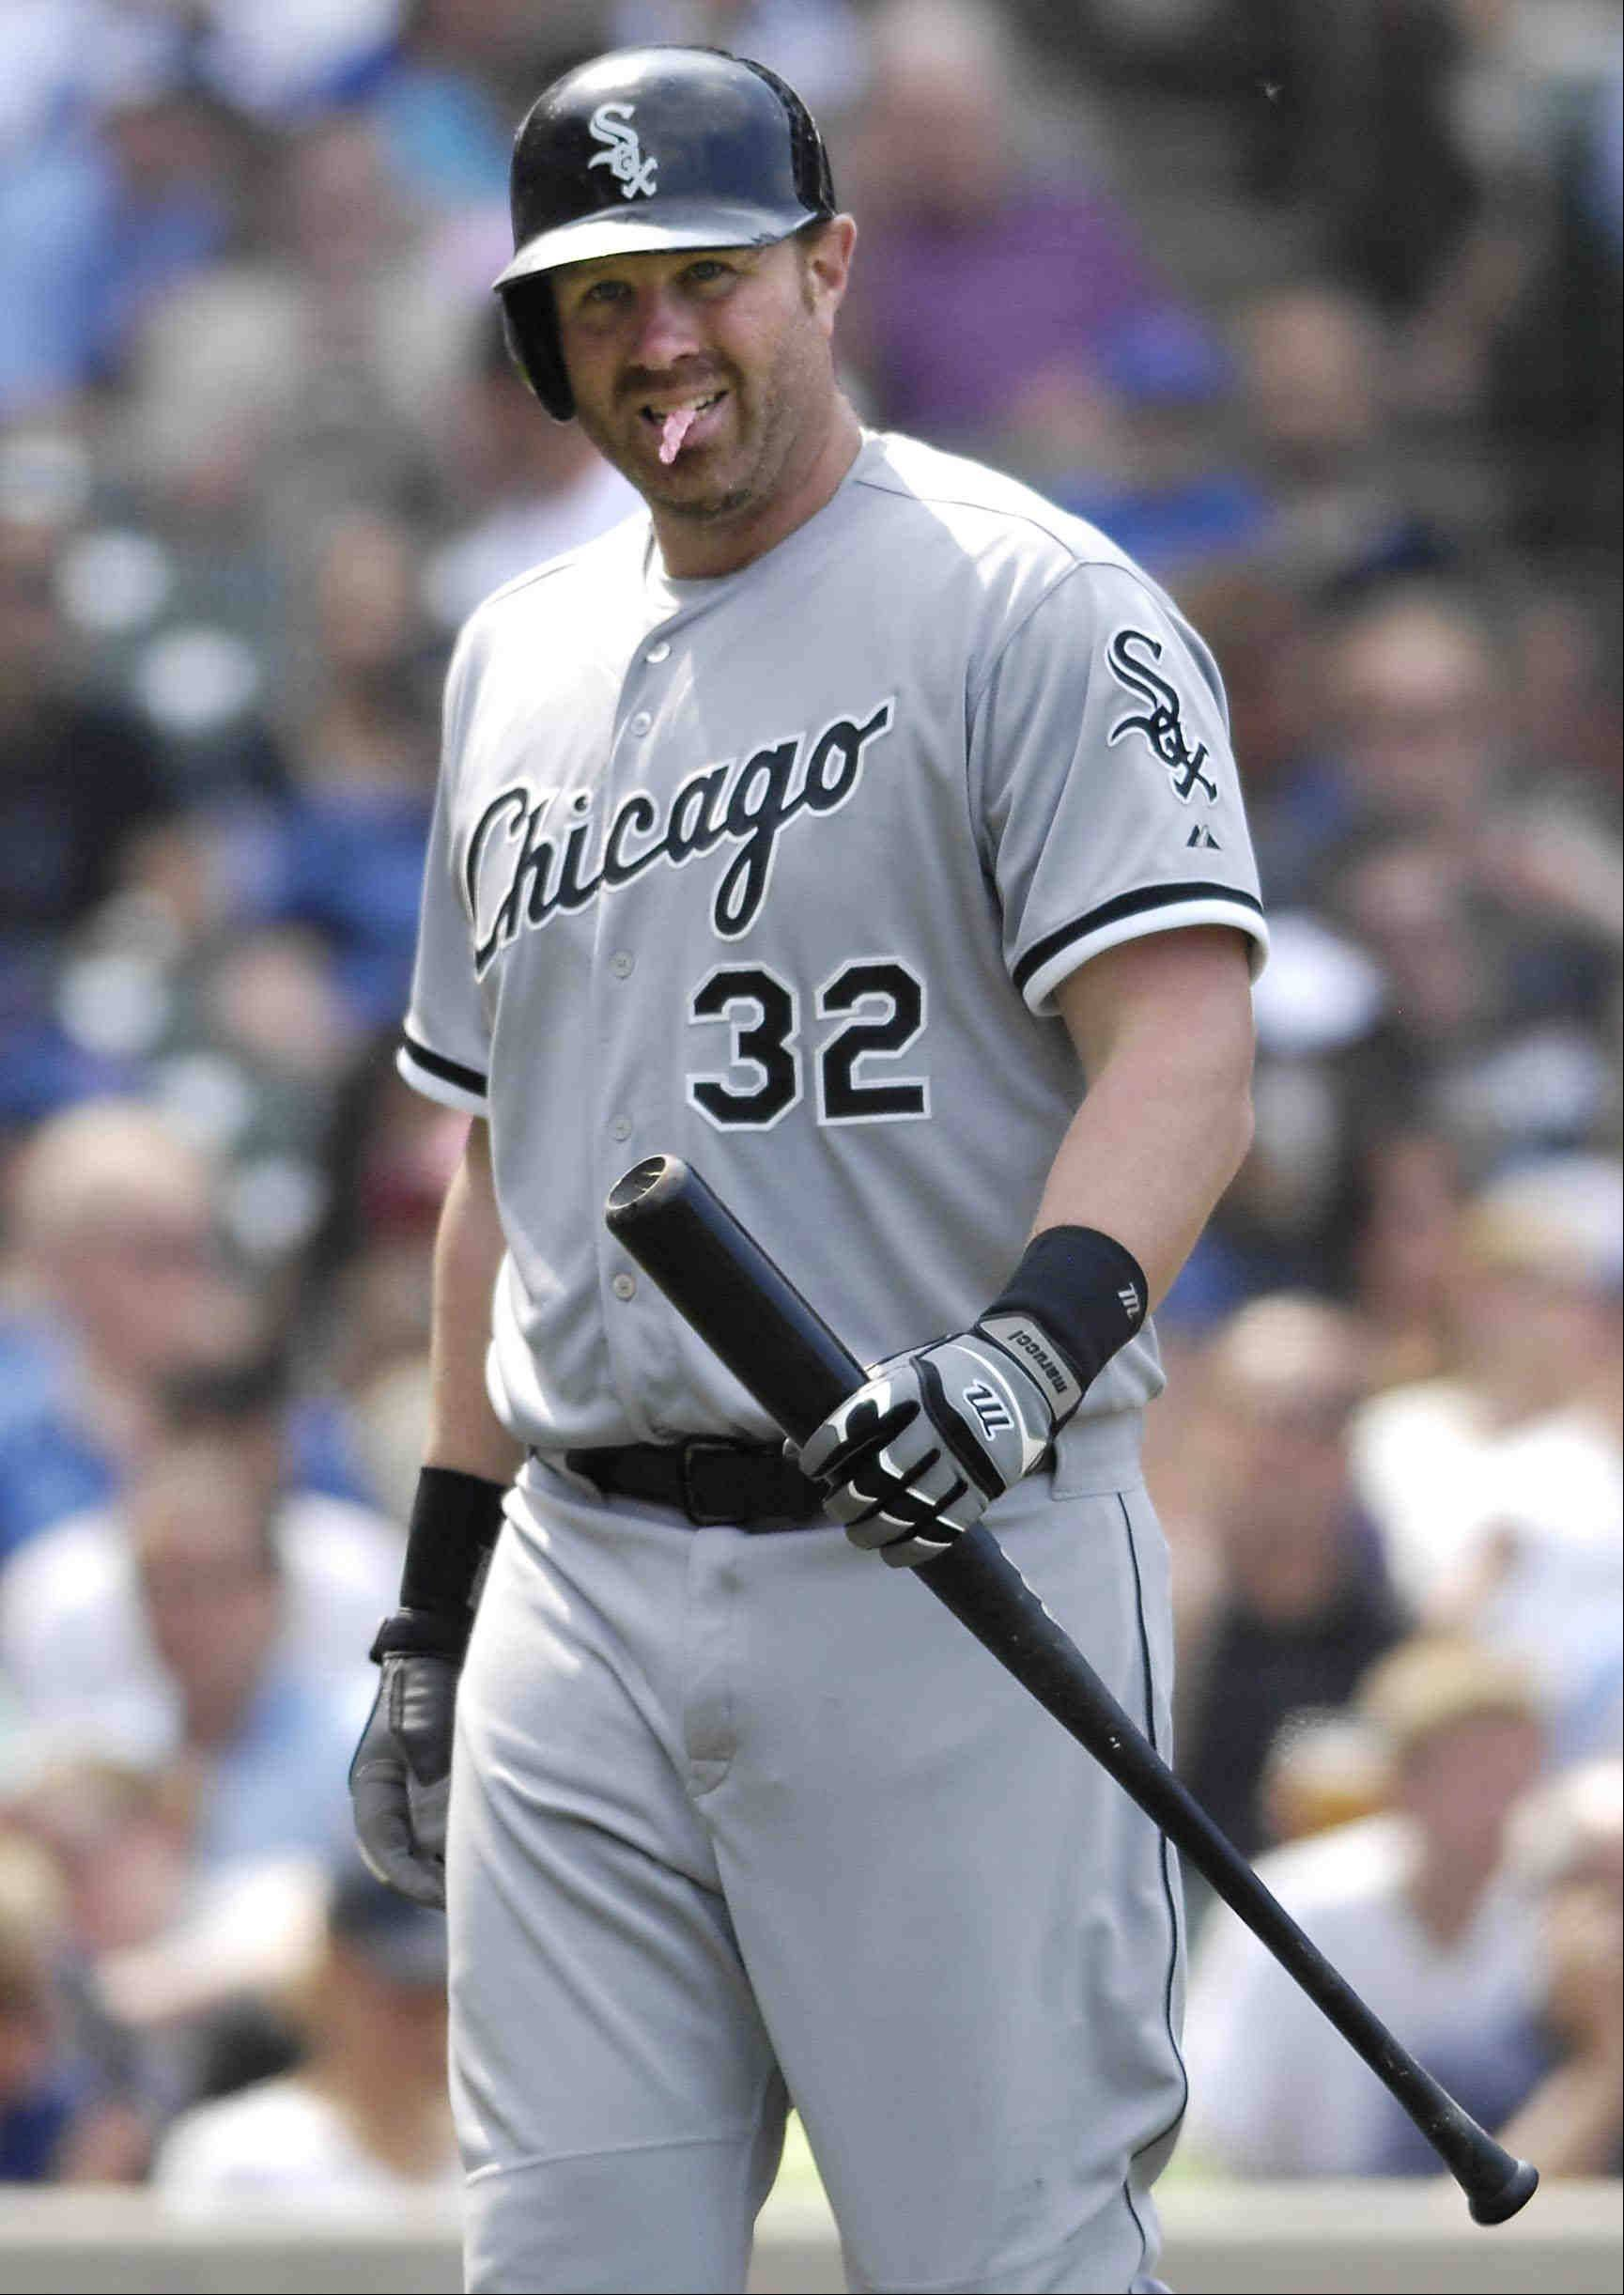 Chicago White Sox first baseman Adam Dunn walks back to the dugout after striking out for the third time on the day.